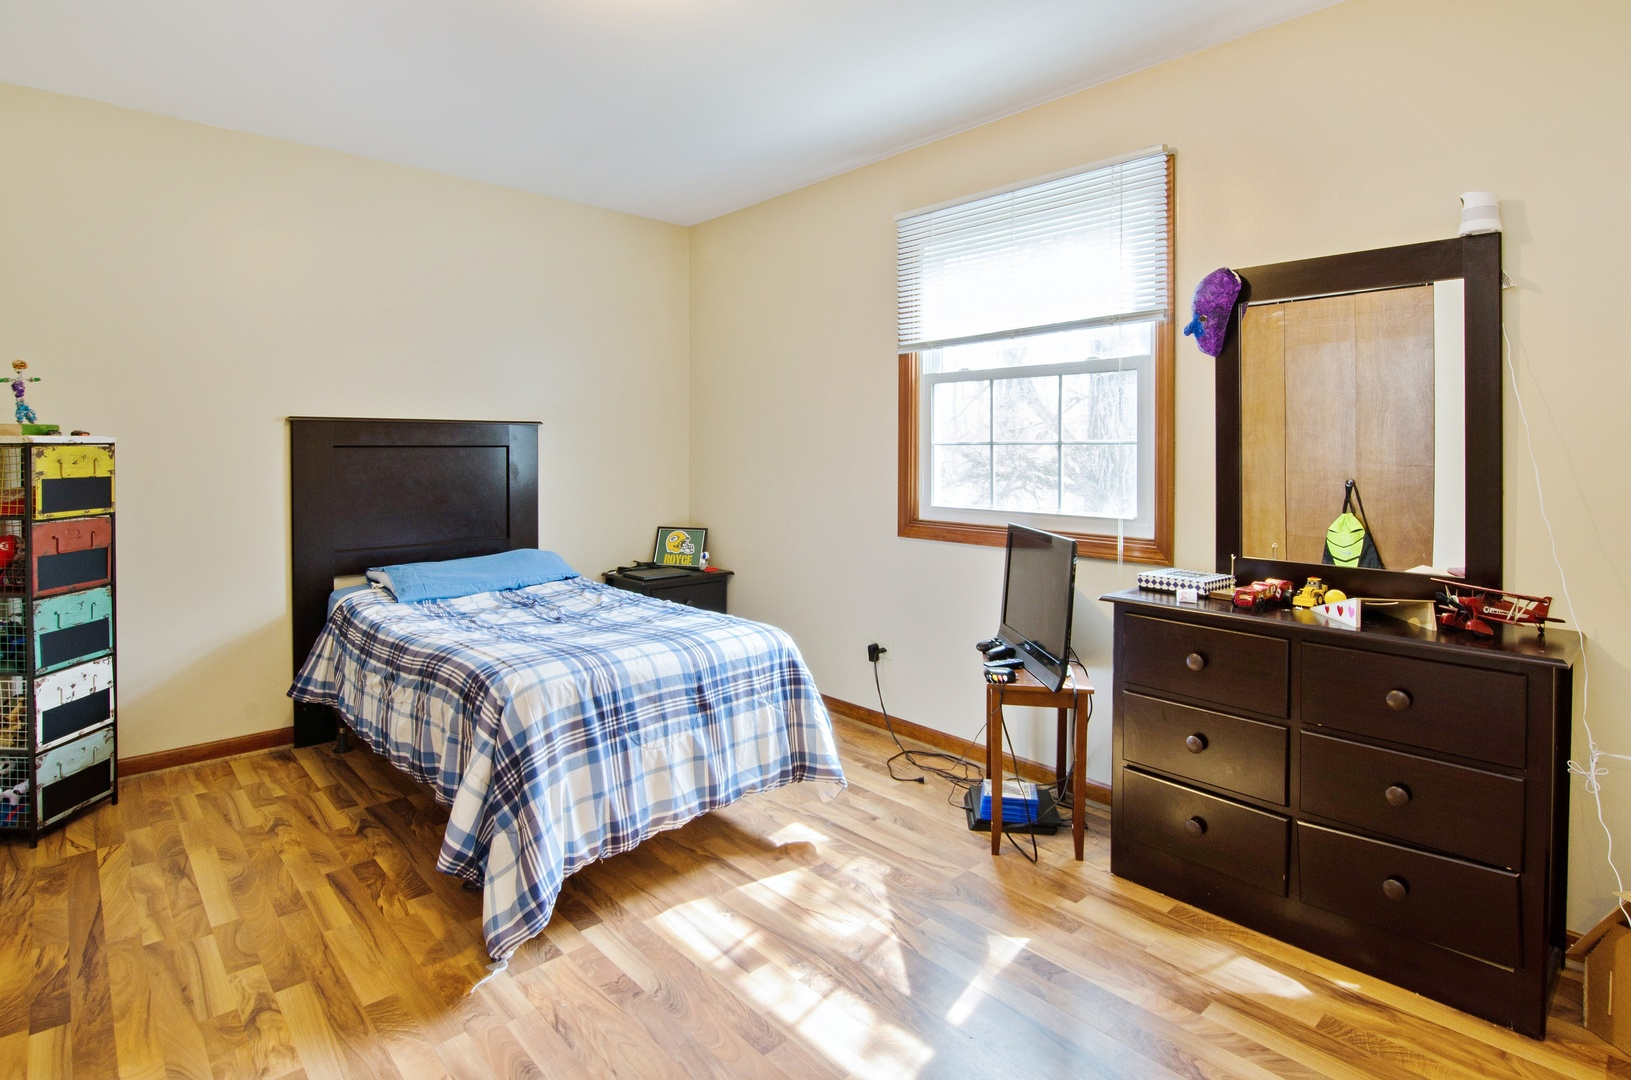 north salt lake big and beautiful singles Riverwalk luxury $300 off has rental units ranging from 795-1189 sq the apartments are beautiful just 12 miles north, salt lake city is a short.